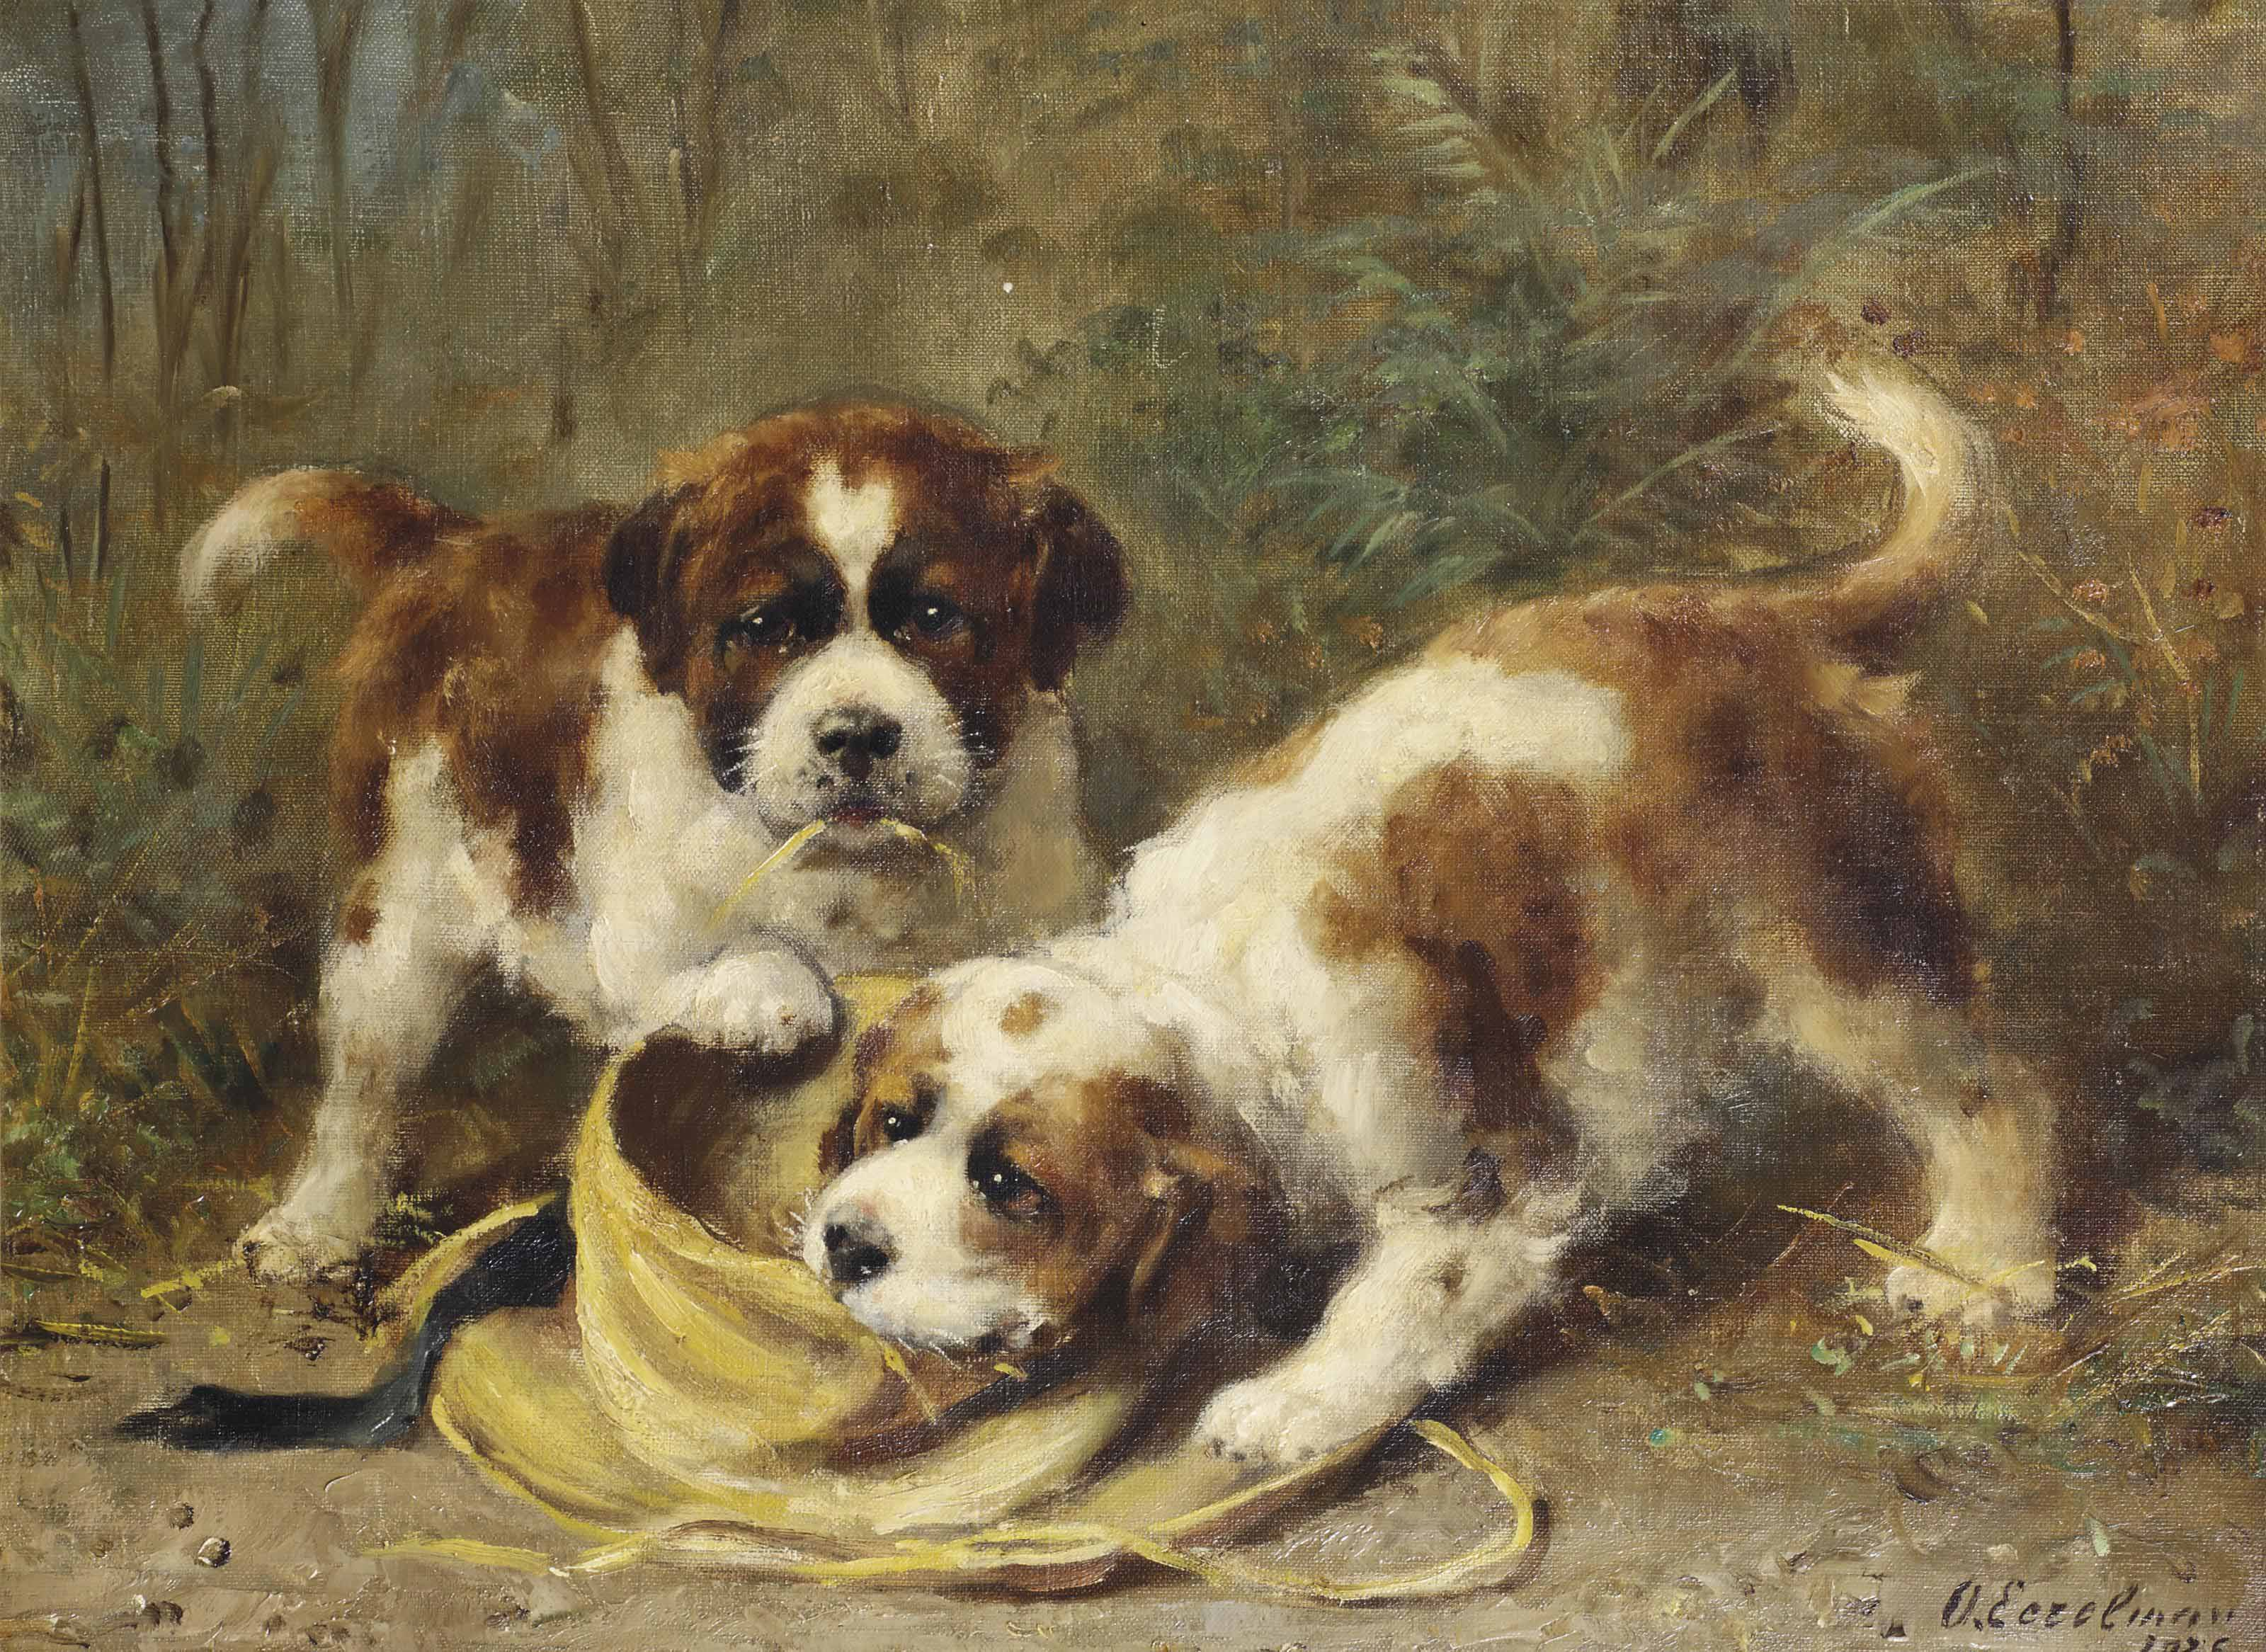 Two Saint-Bernard puppies playing with a hat